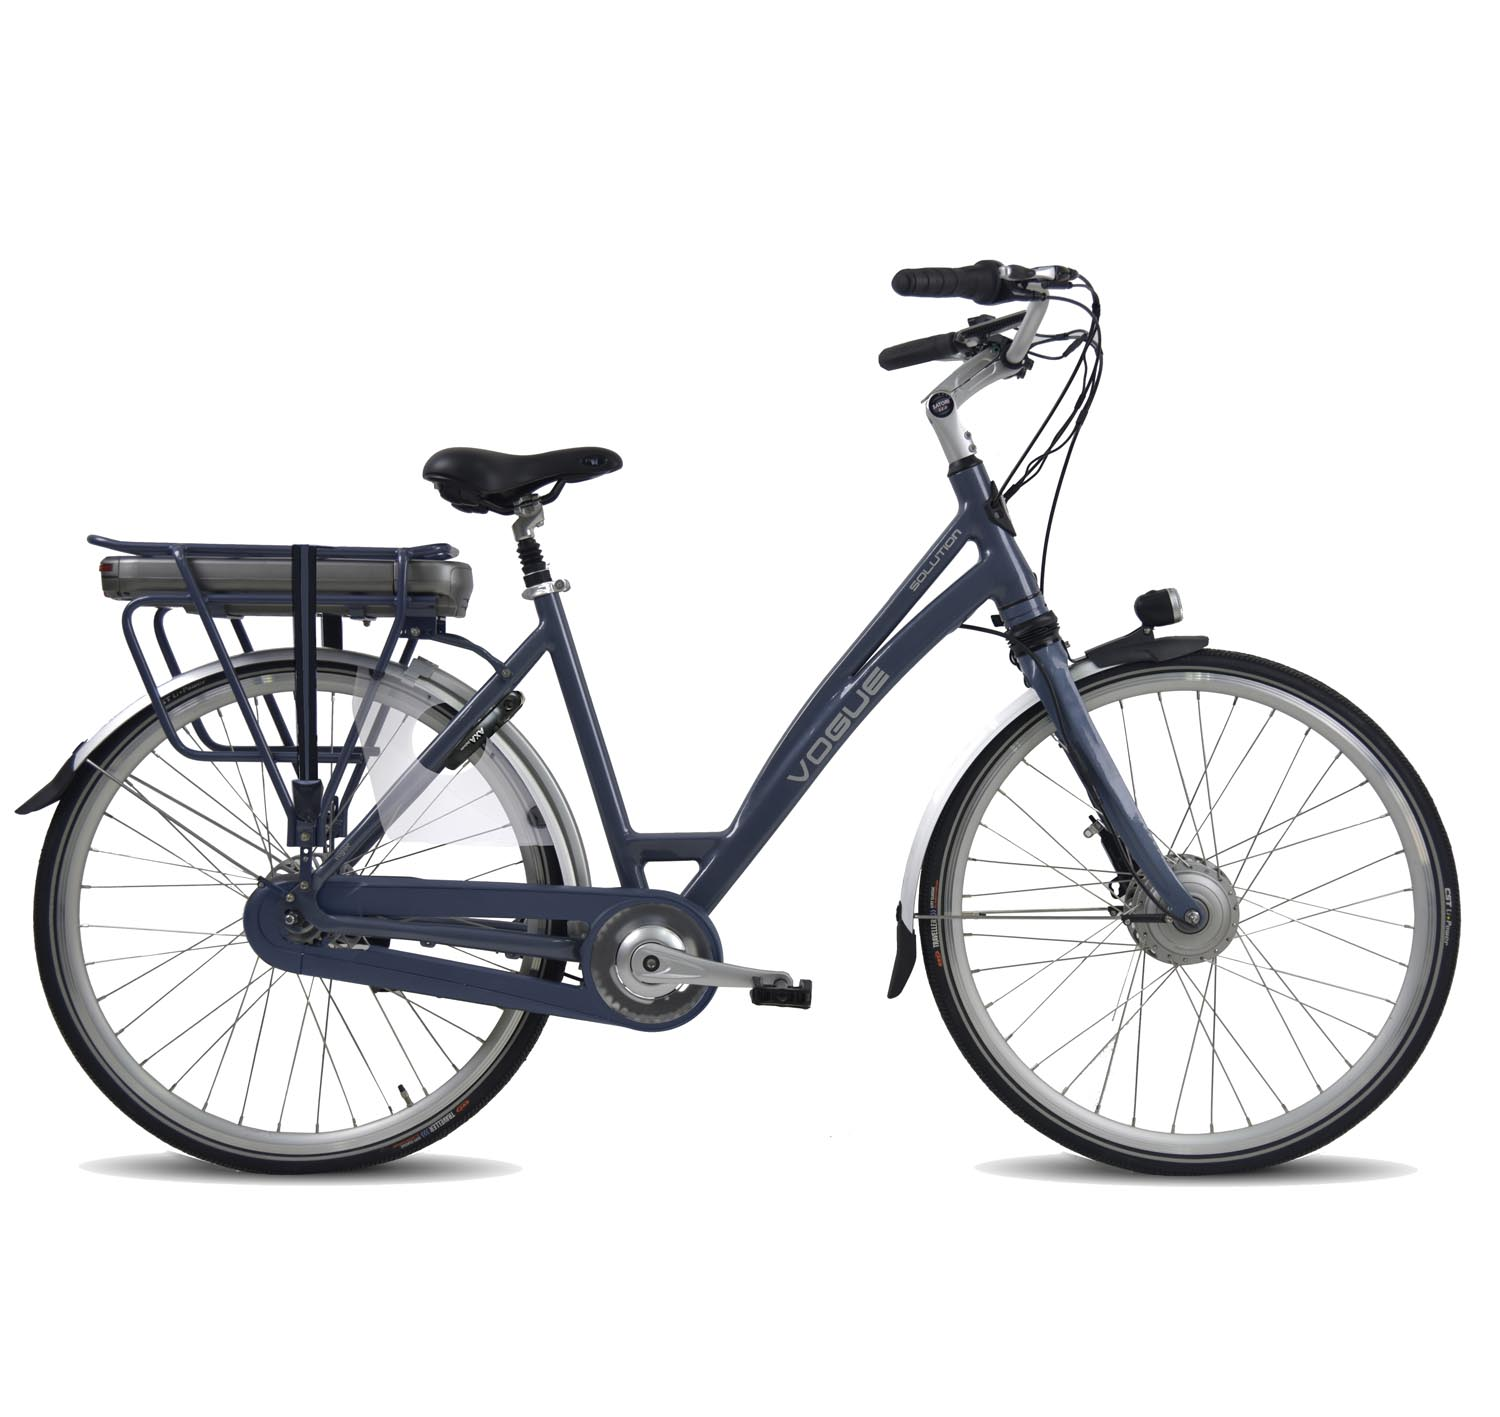 vogue-solution-elektrische-fiets-3.jpg